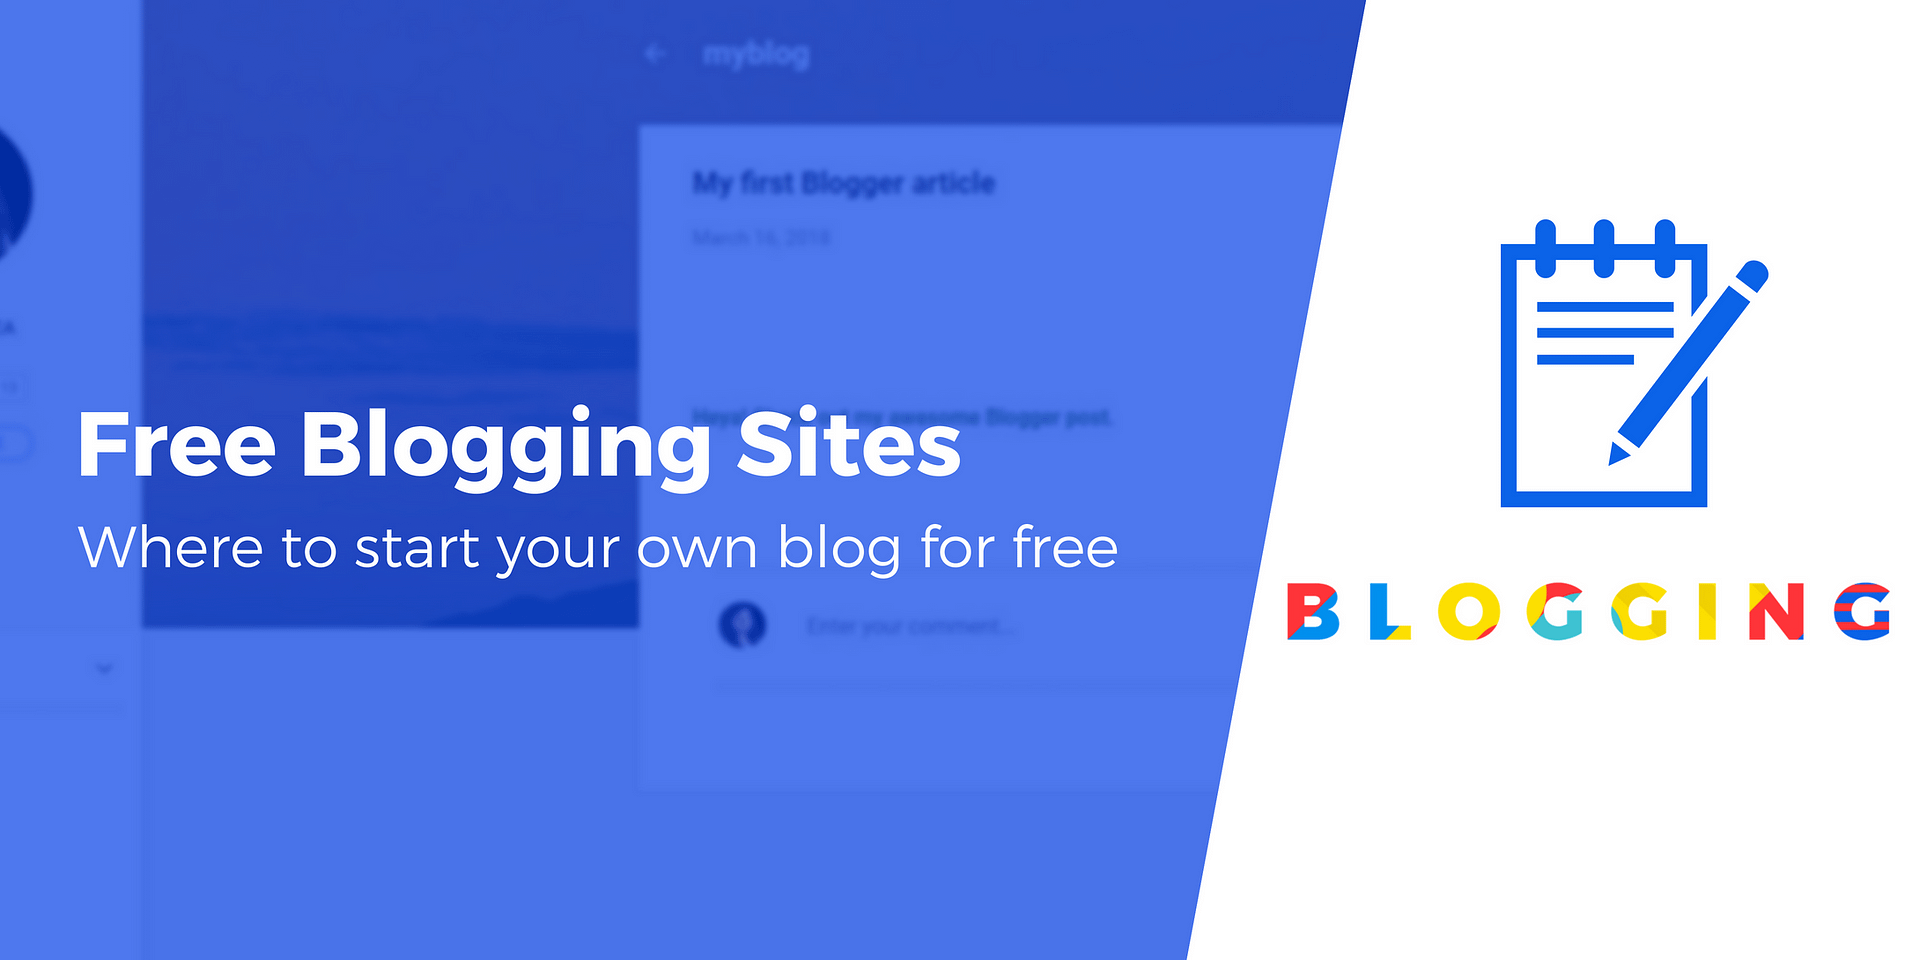 9 Best Free Blogging Sites: Launch a Blog Without Spending a